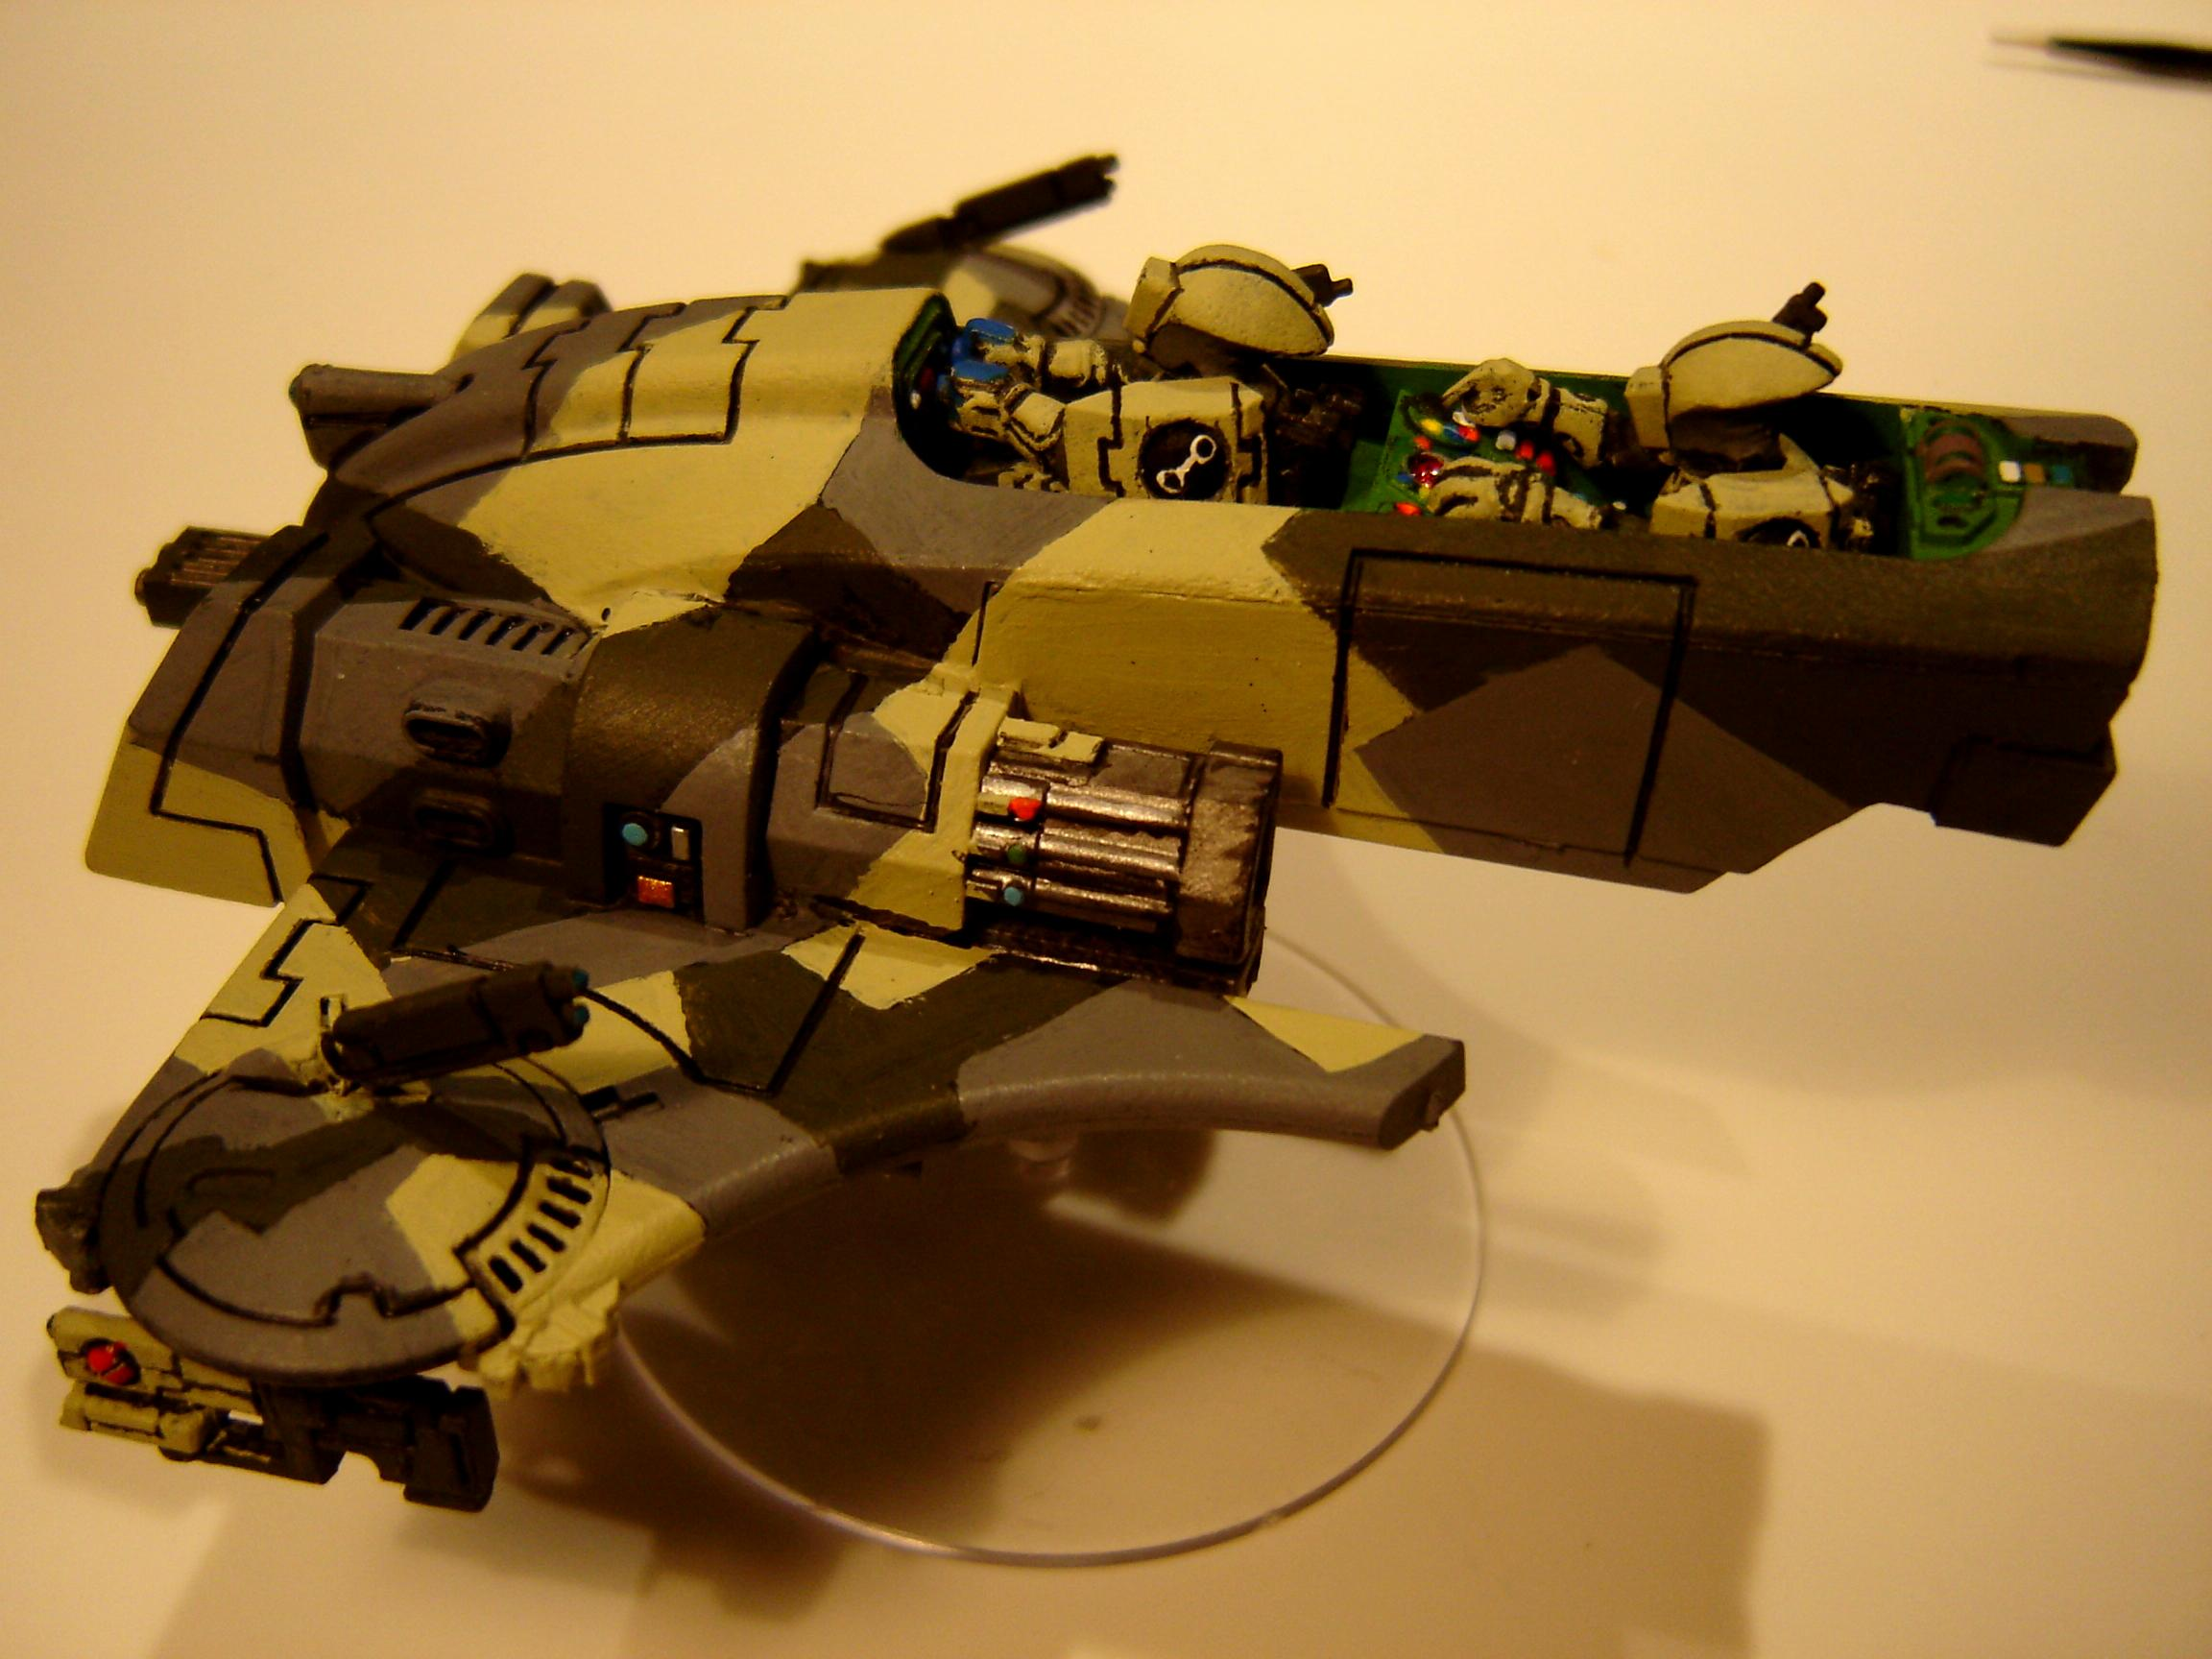 Tau, Tau Piranha side